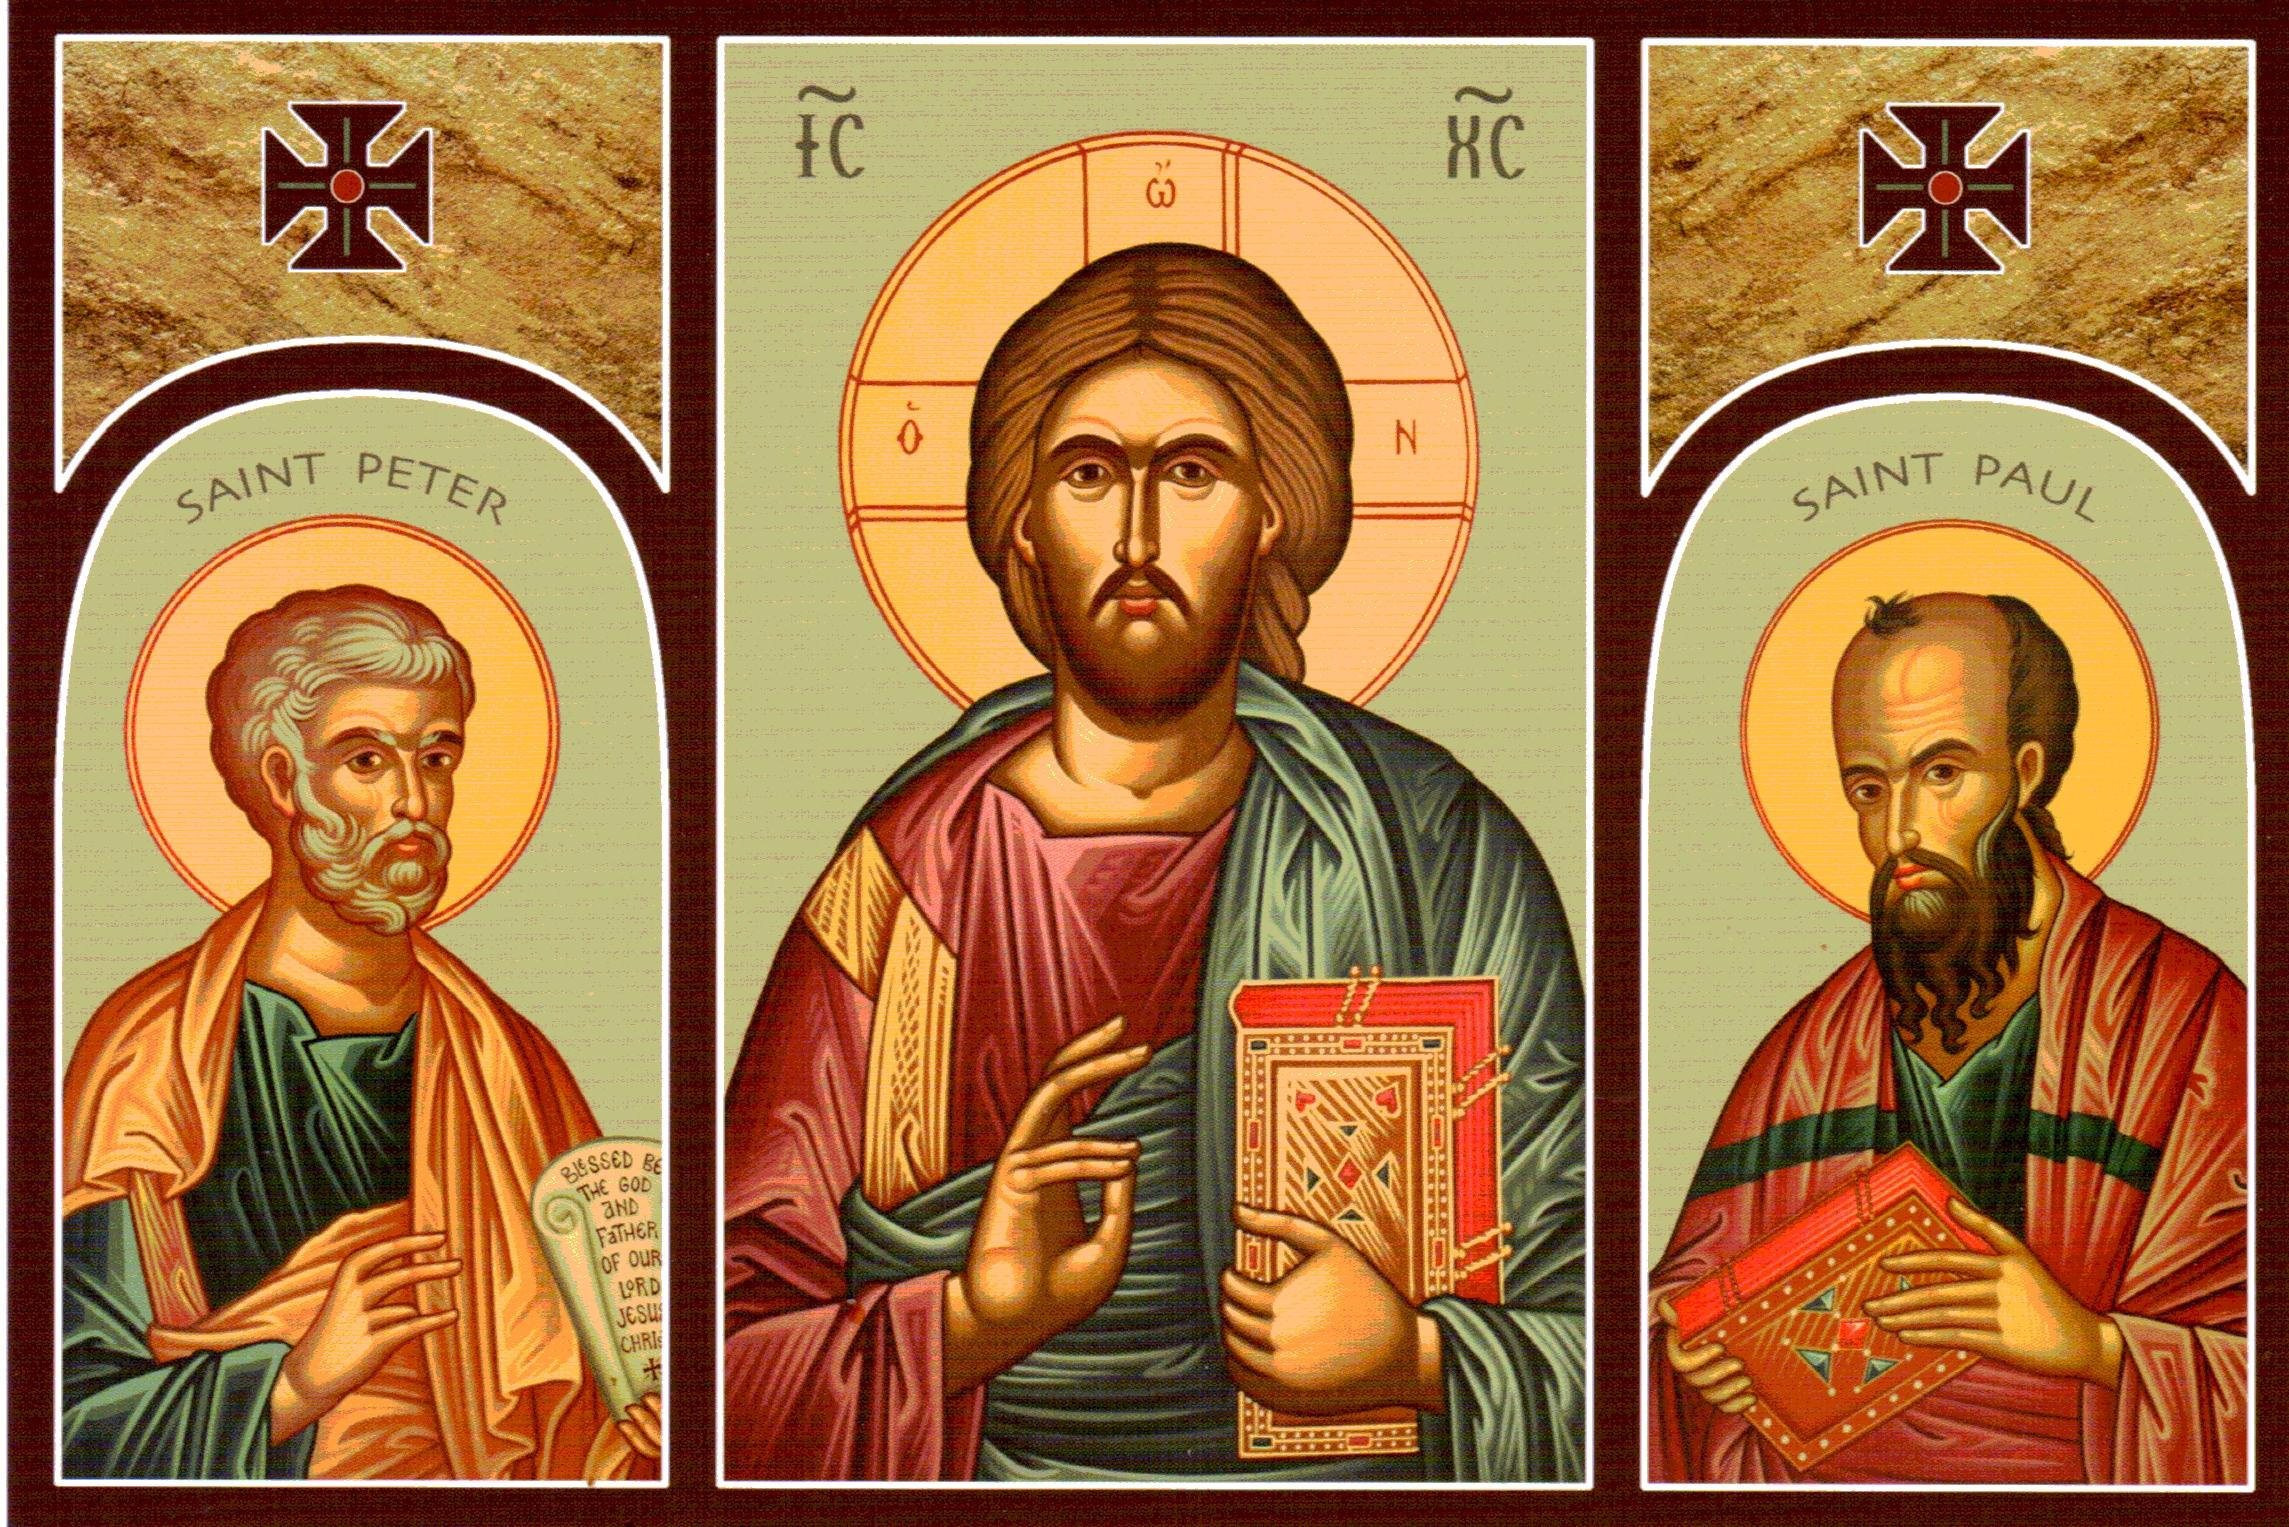 FASTING WITH THE APOSTLES